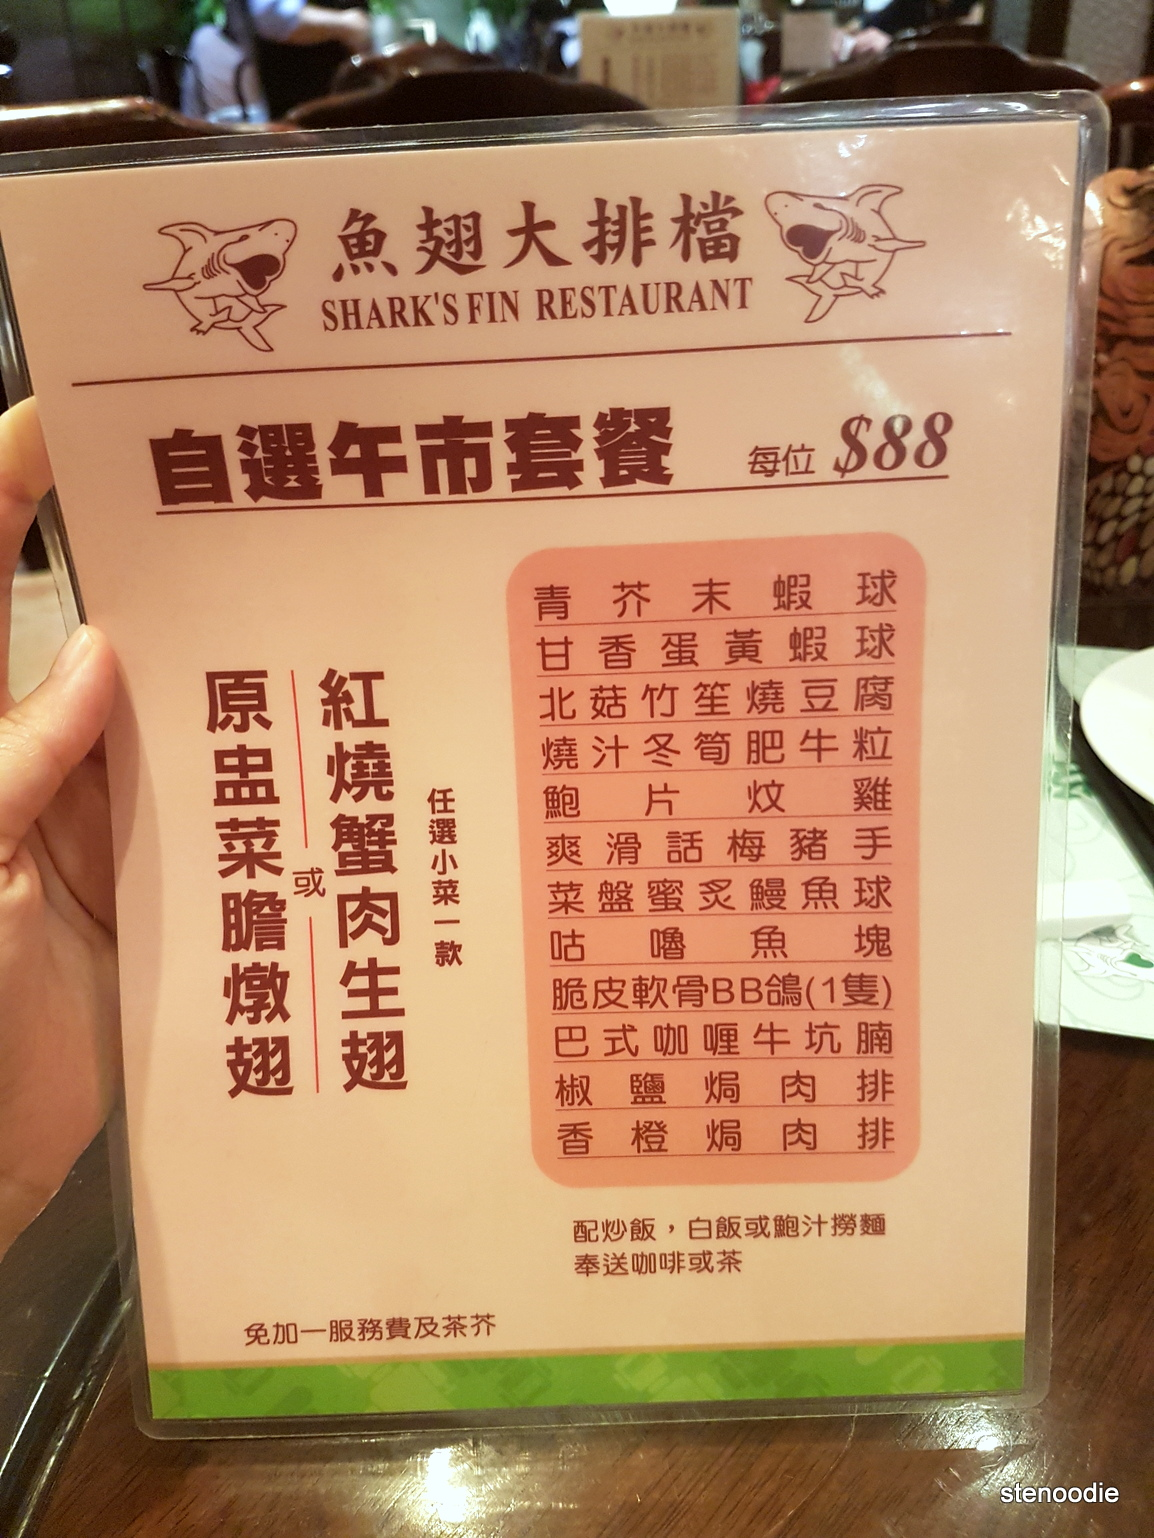 自選午市套餐 pick your own lunch menu